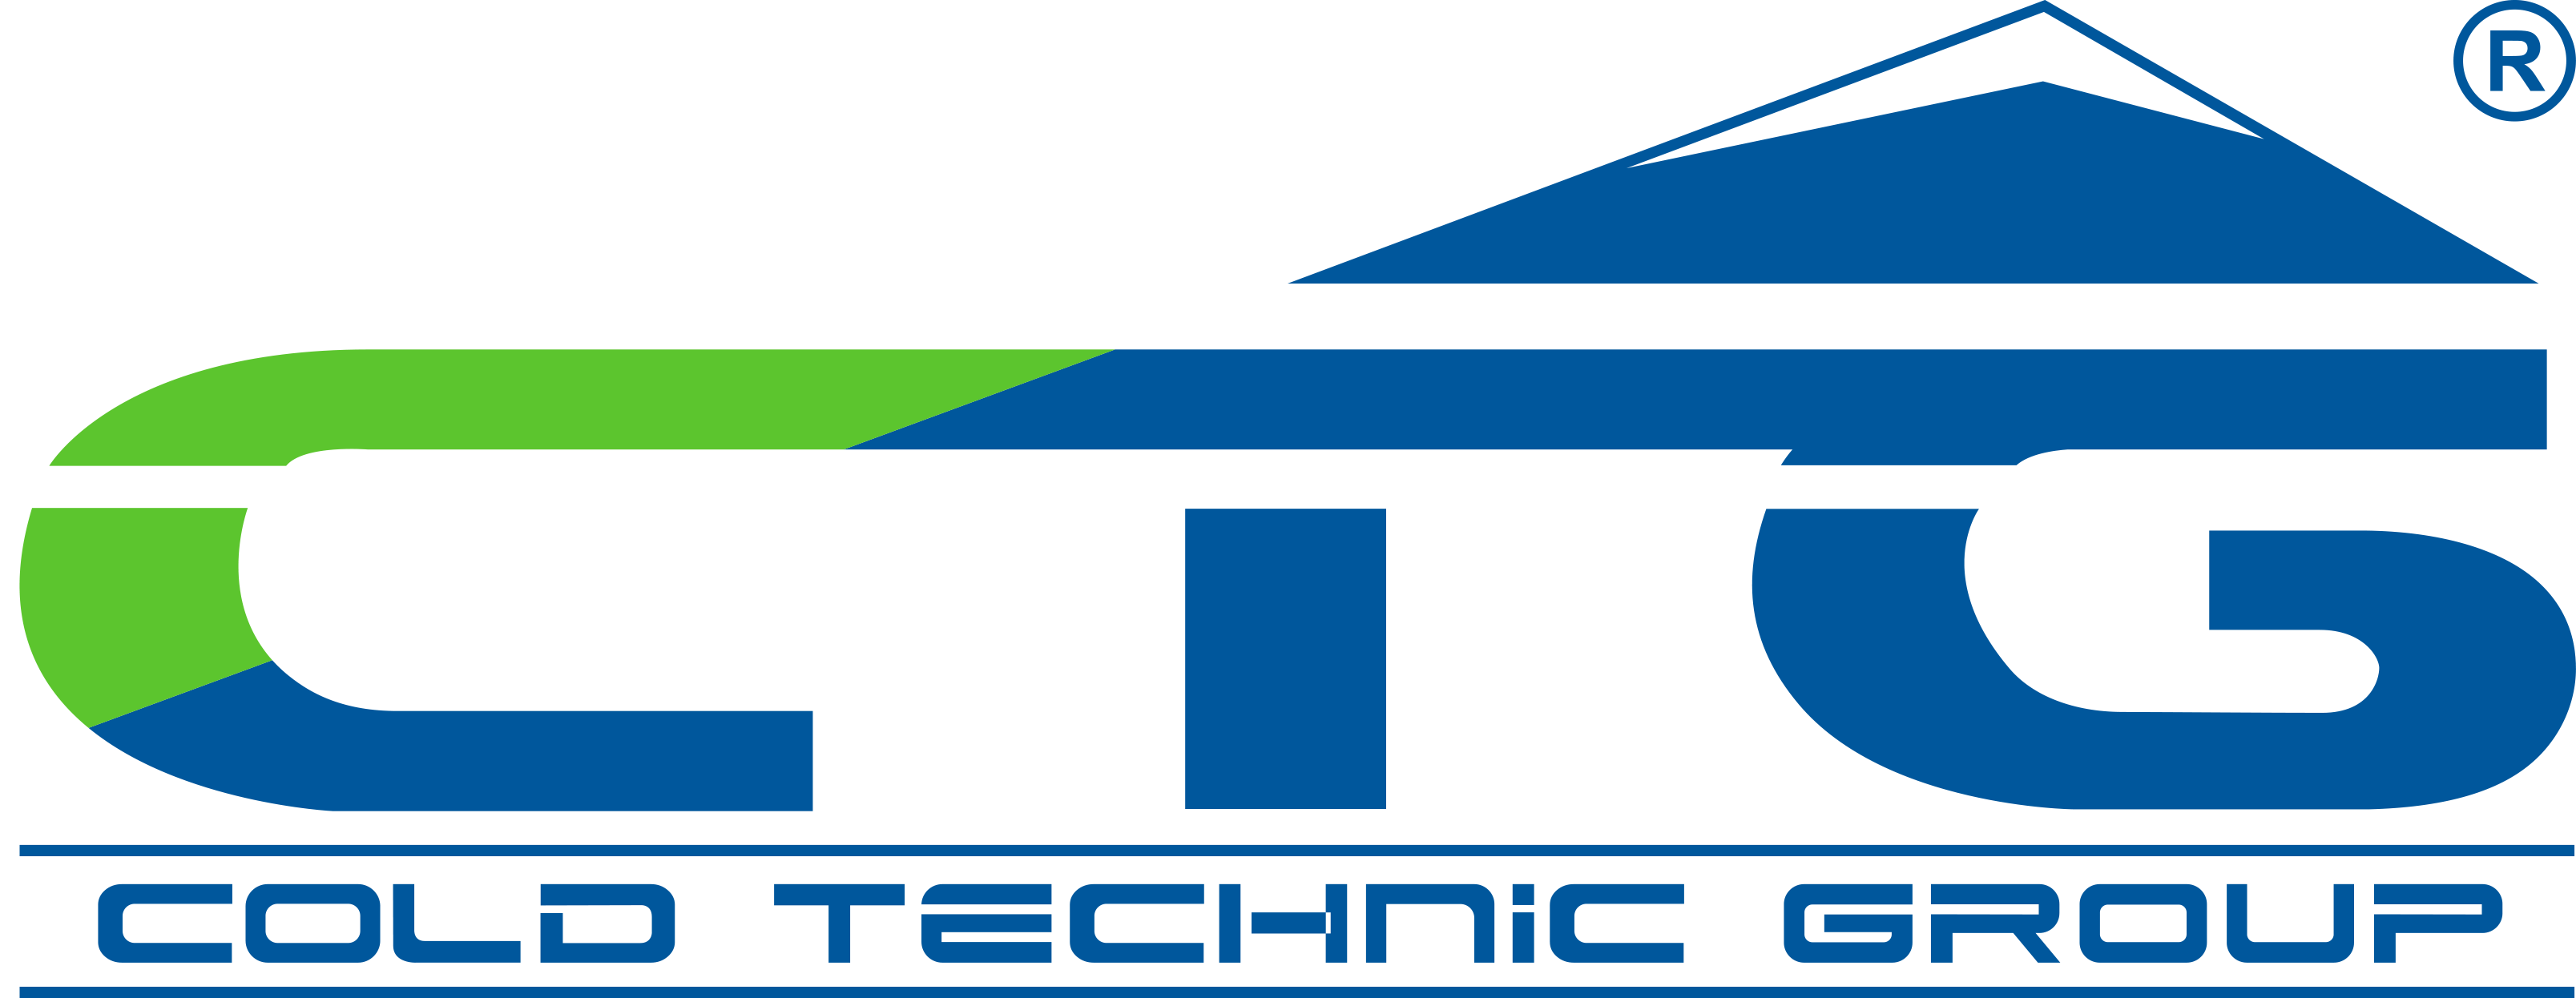 Cold Technic Group